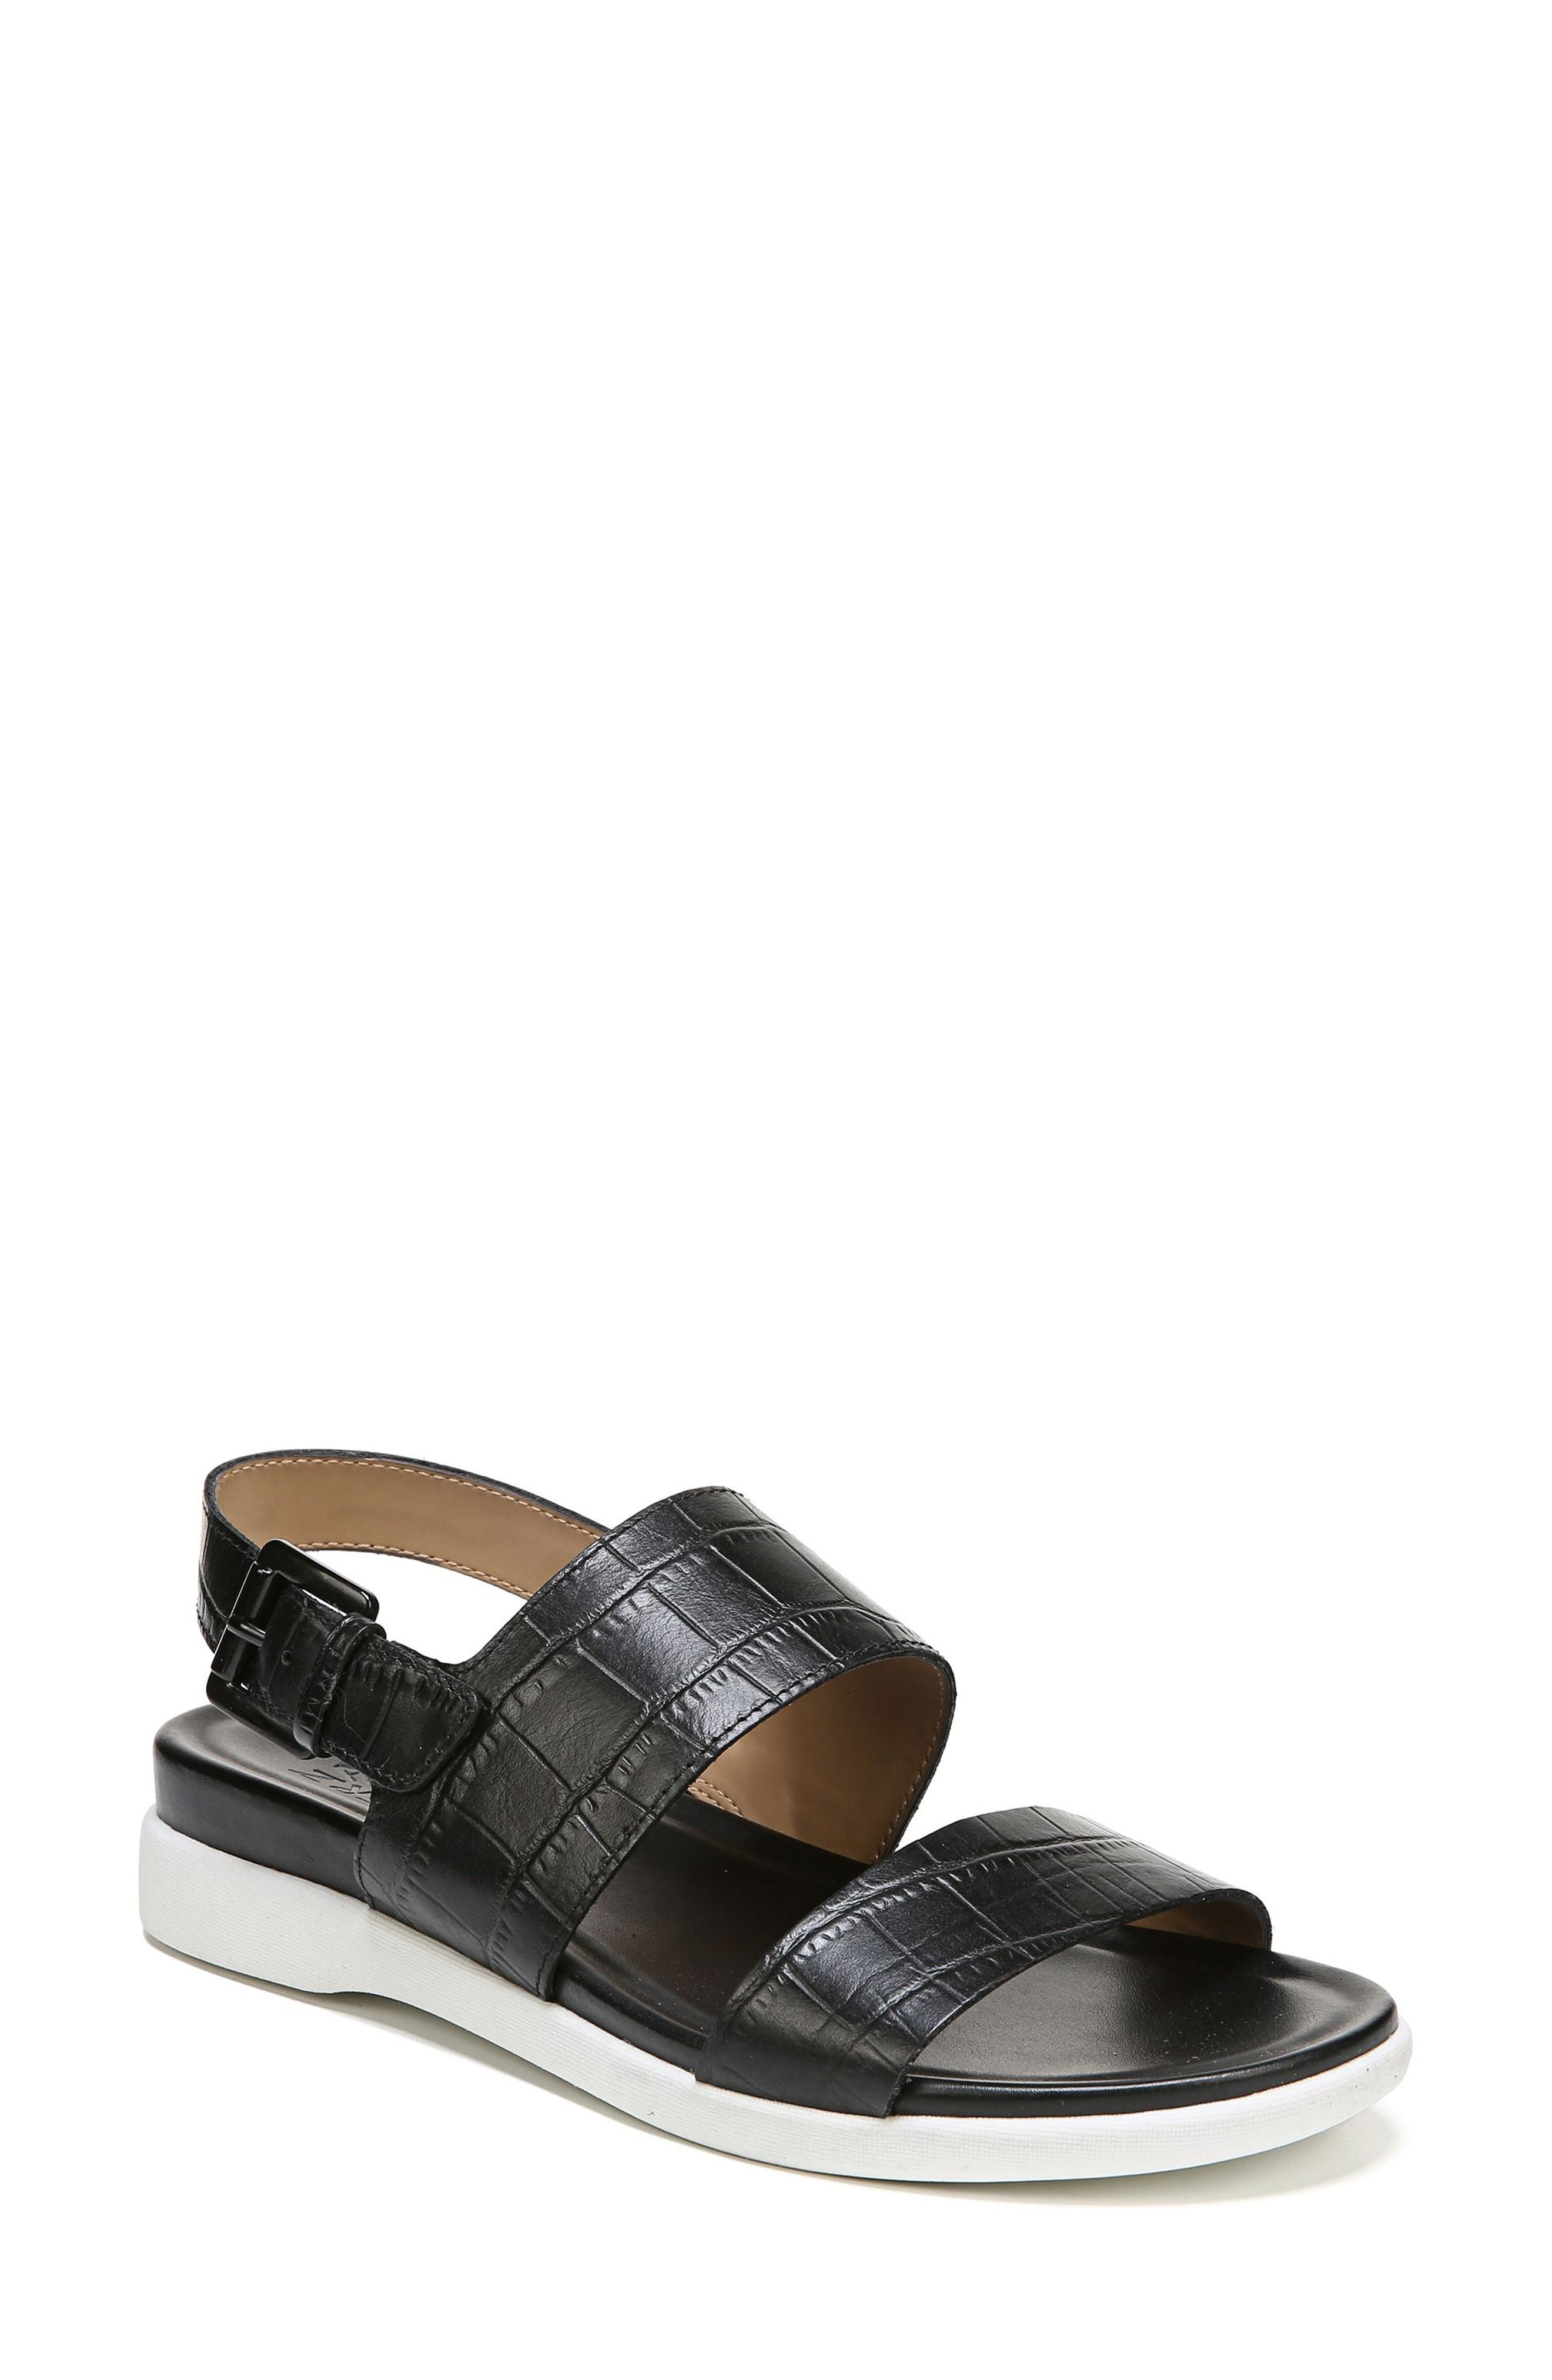 Emory Wedge Sandal,                         Main,                         color, BLACK PRINTED LEATHER